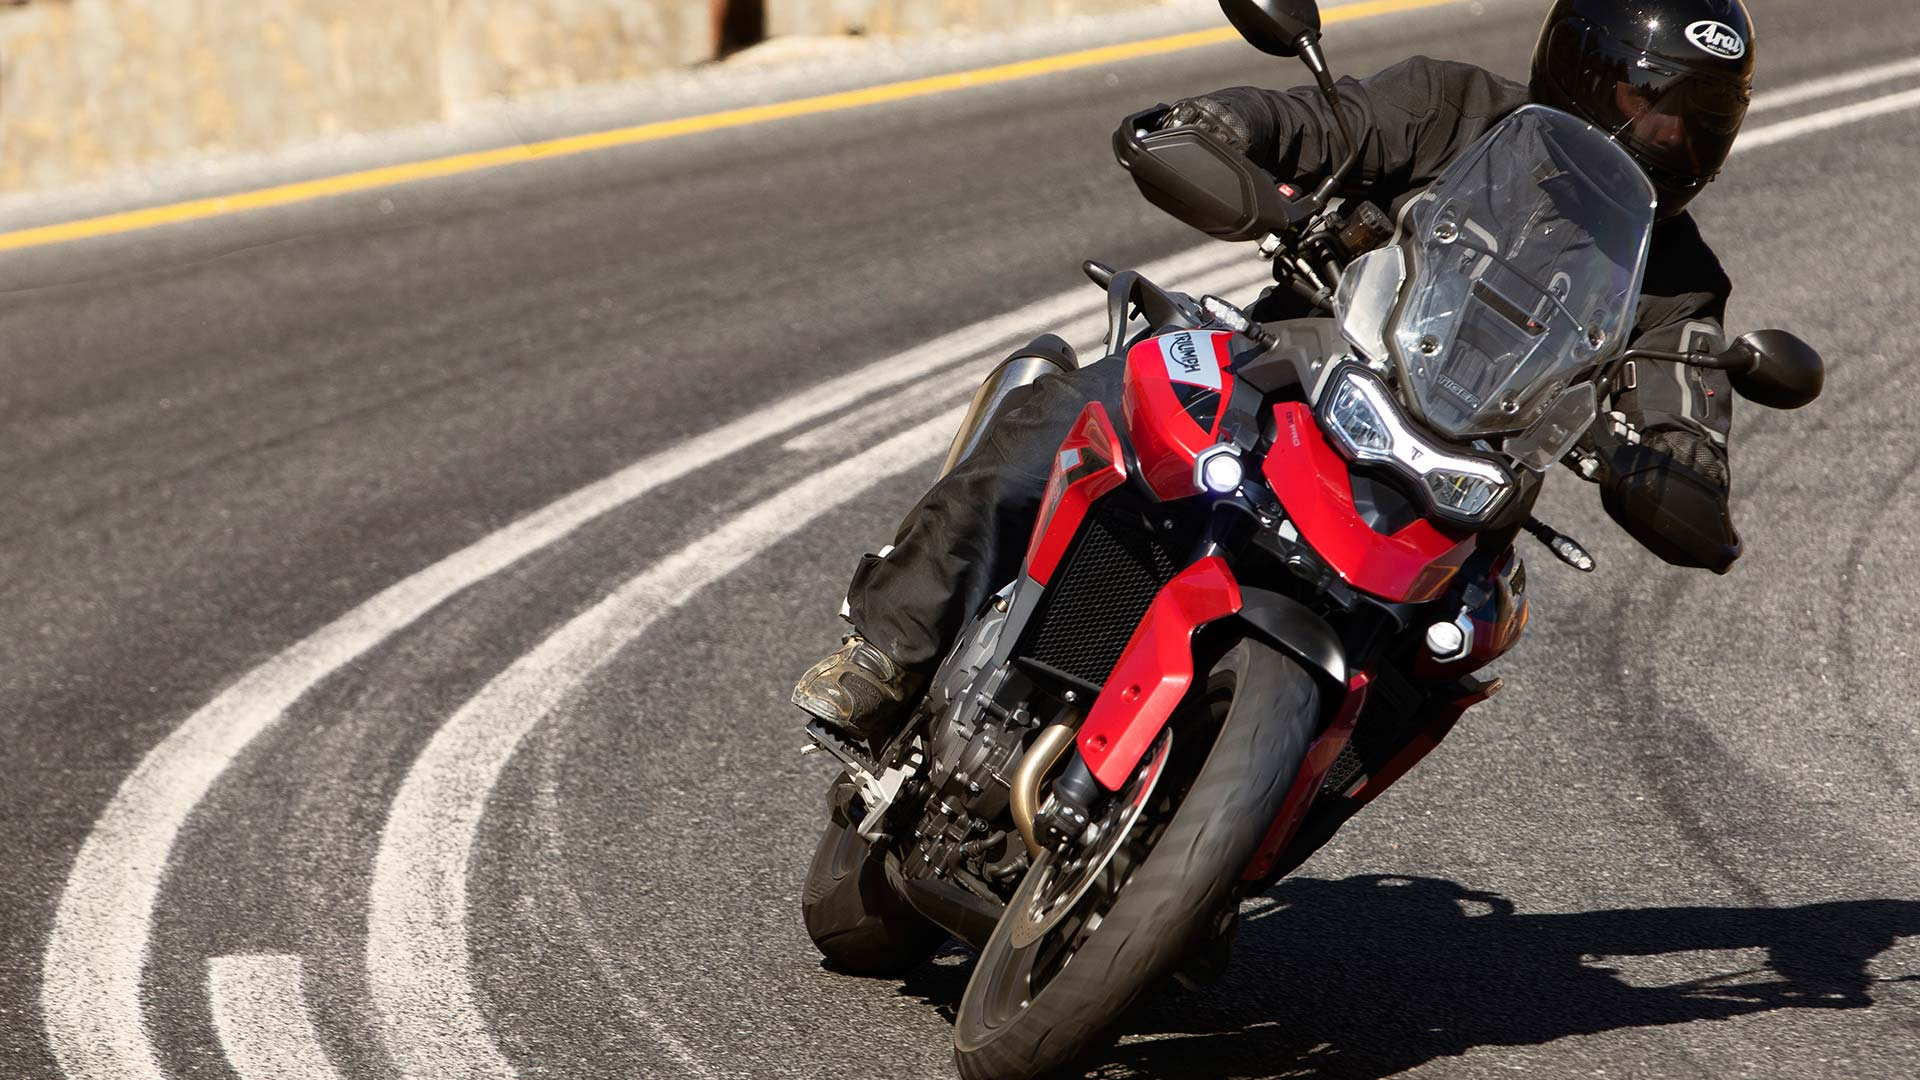 Triumph Tiger 900 GT Pro in Korosi Red in action